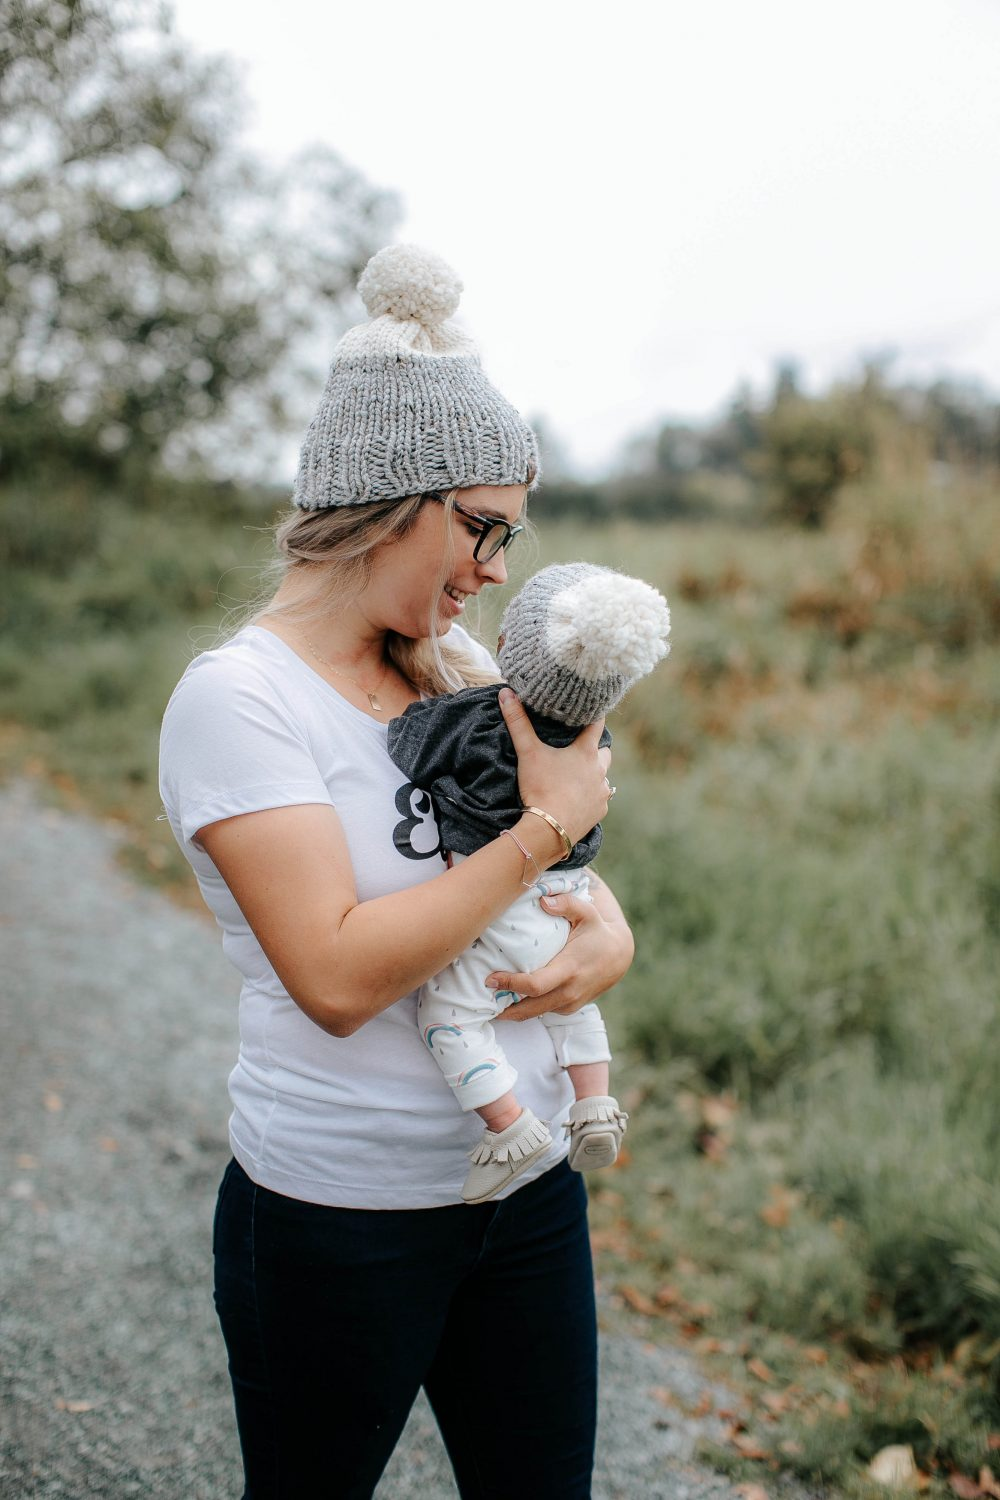 Mom and Baby Matching Knitted Beanies for Fall | Wild Child Designs